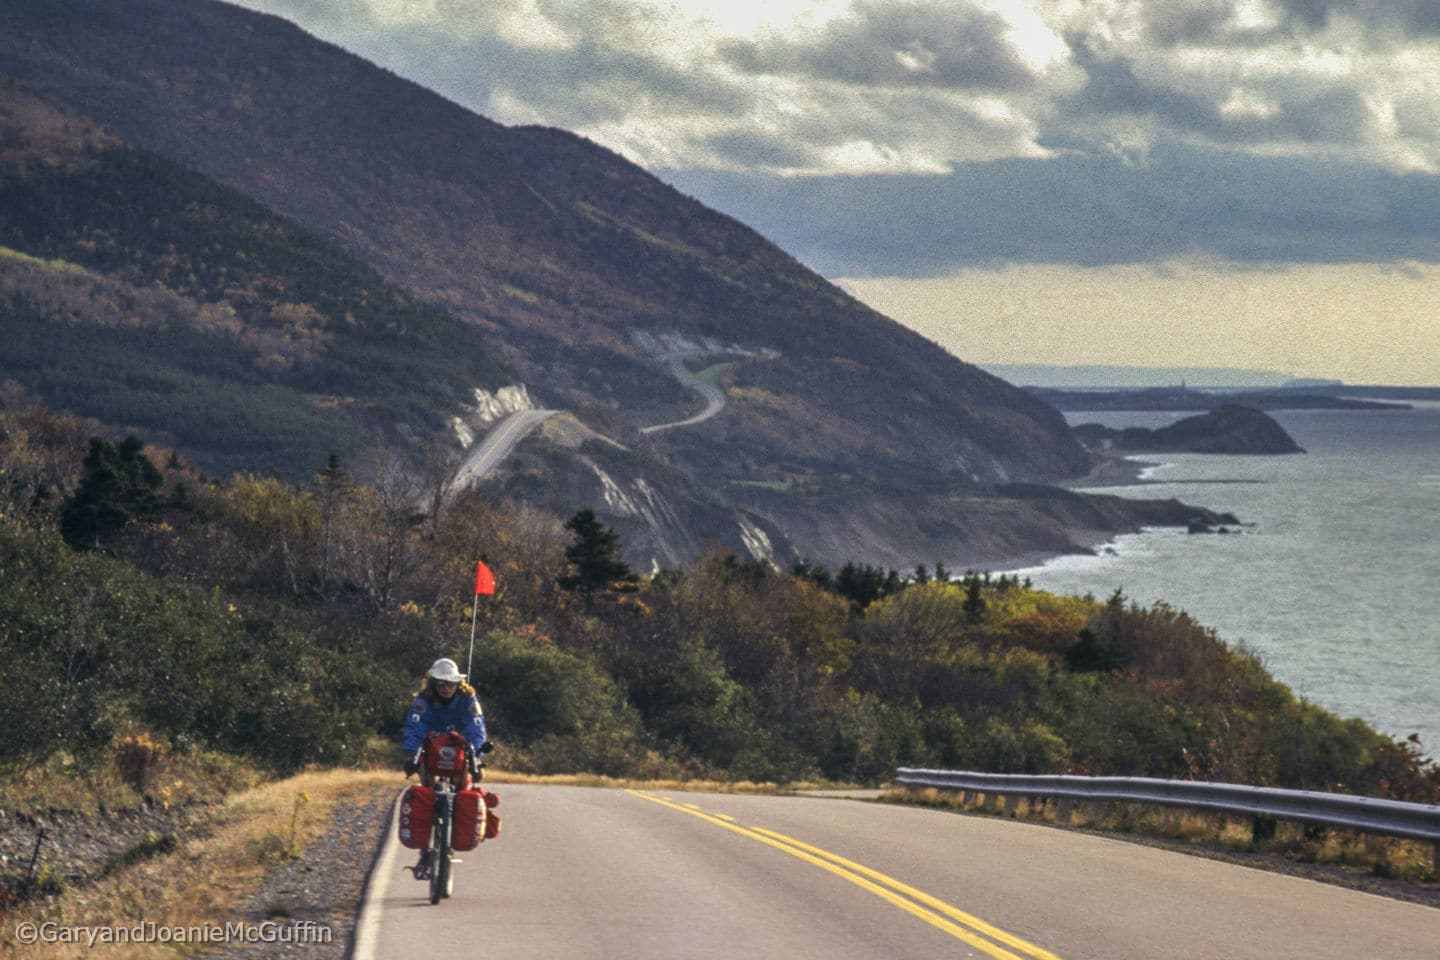 Biker on a highway with mountains and shore line in background